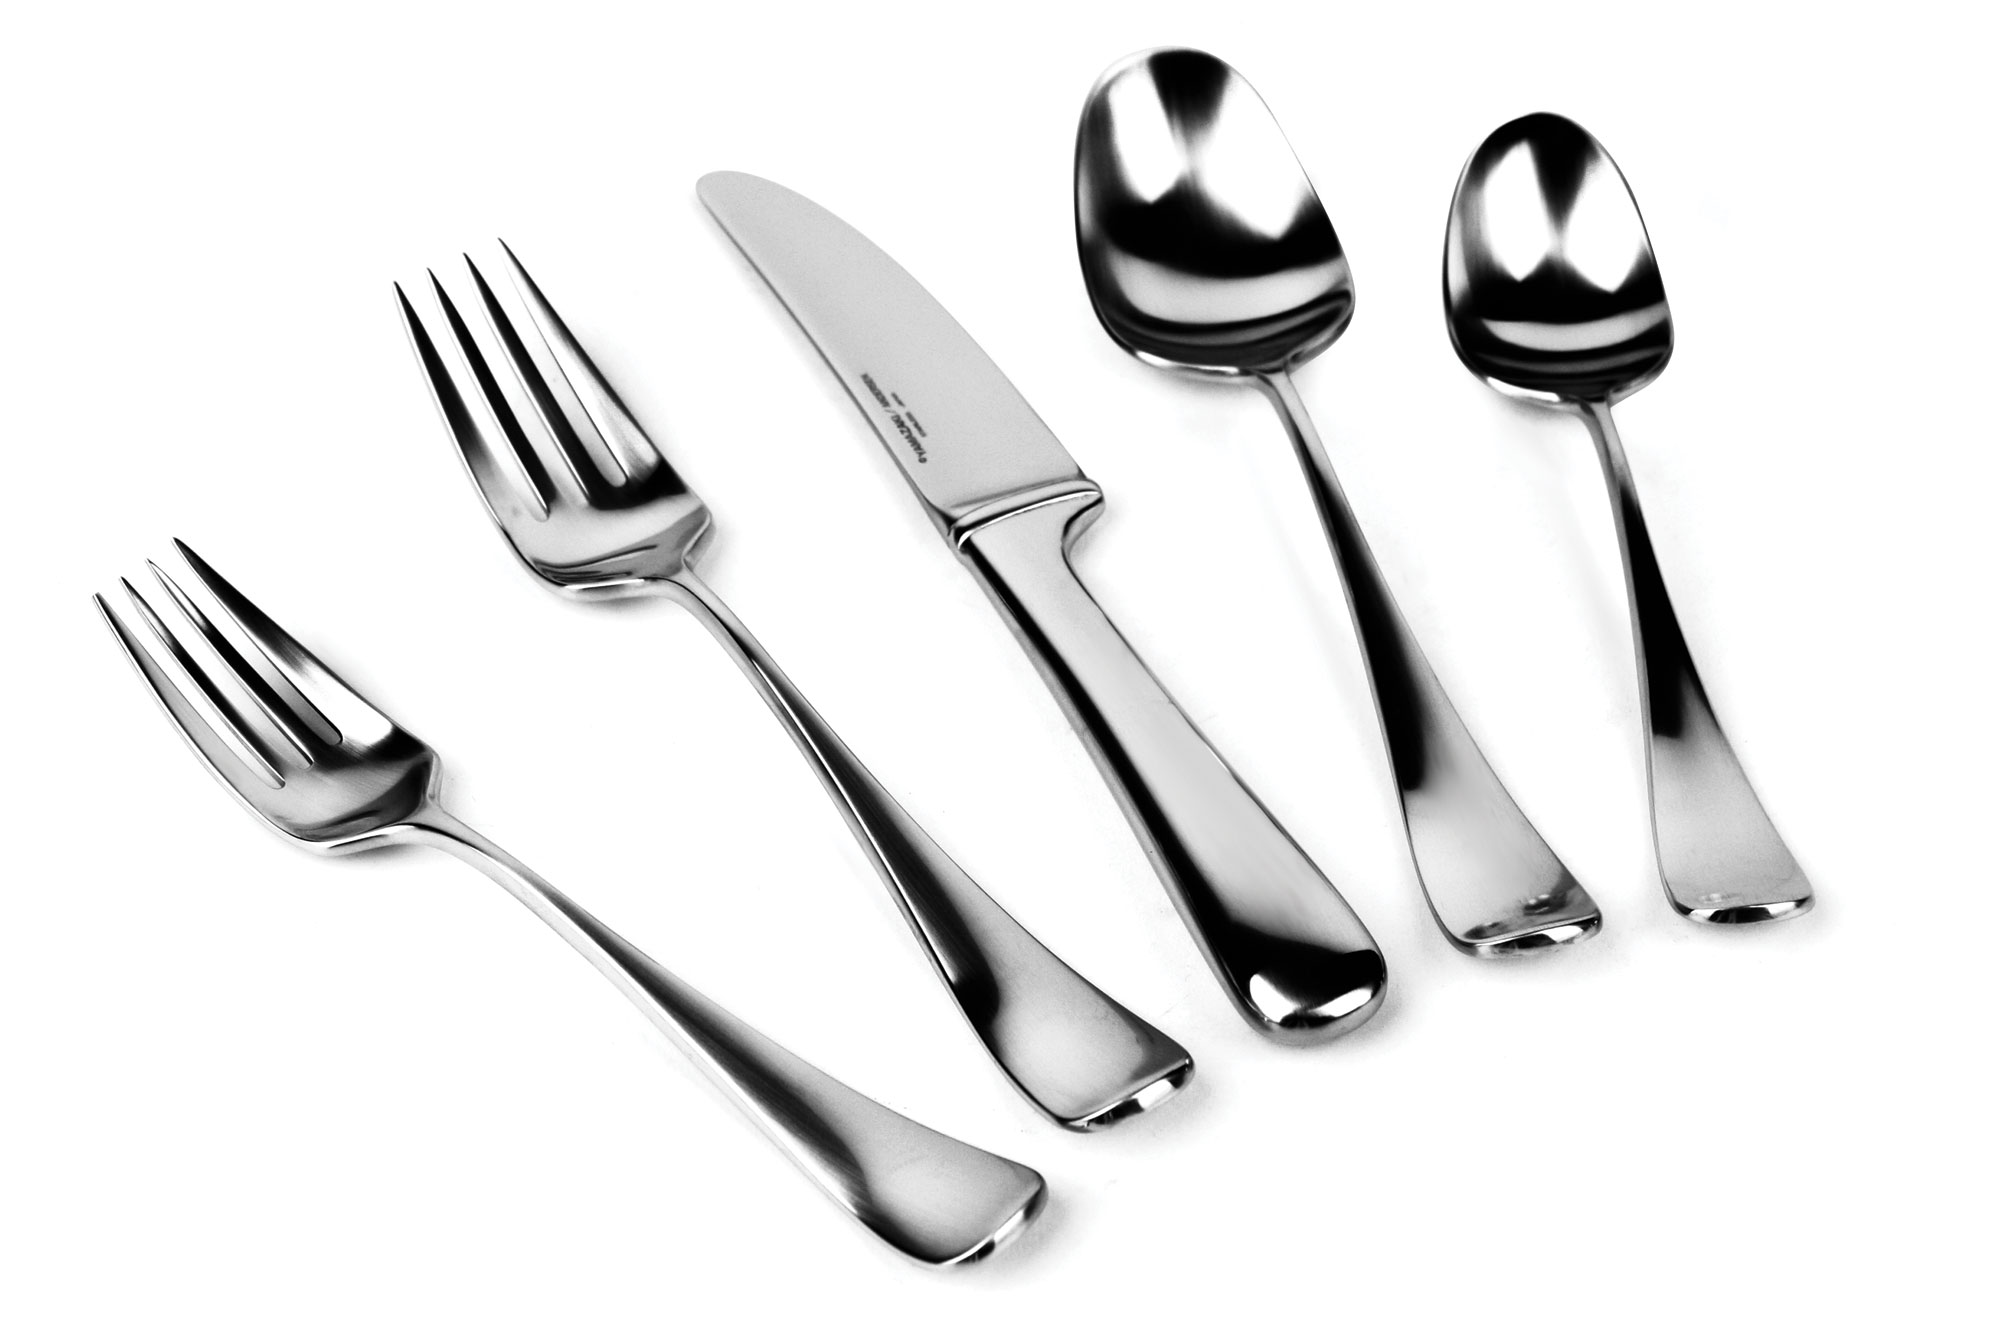 20-piece  sc 1 st  Cutlery and More & Yamazaki Hafnia Stainless Steel Flatware Set 20-piece | Cutlery and ...